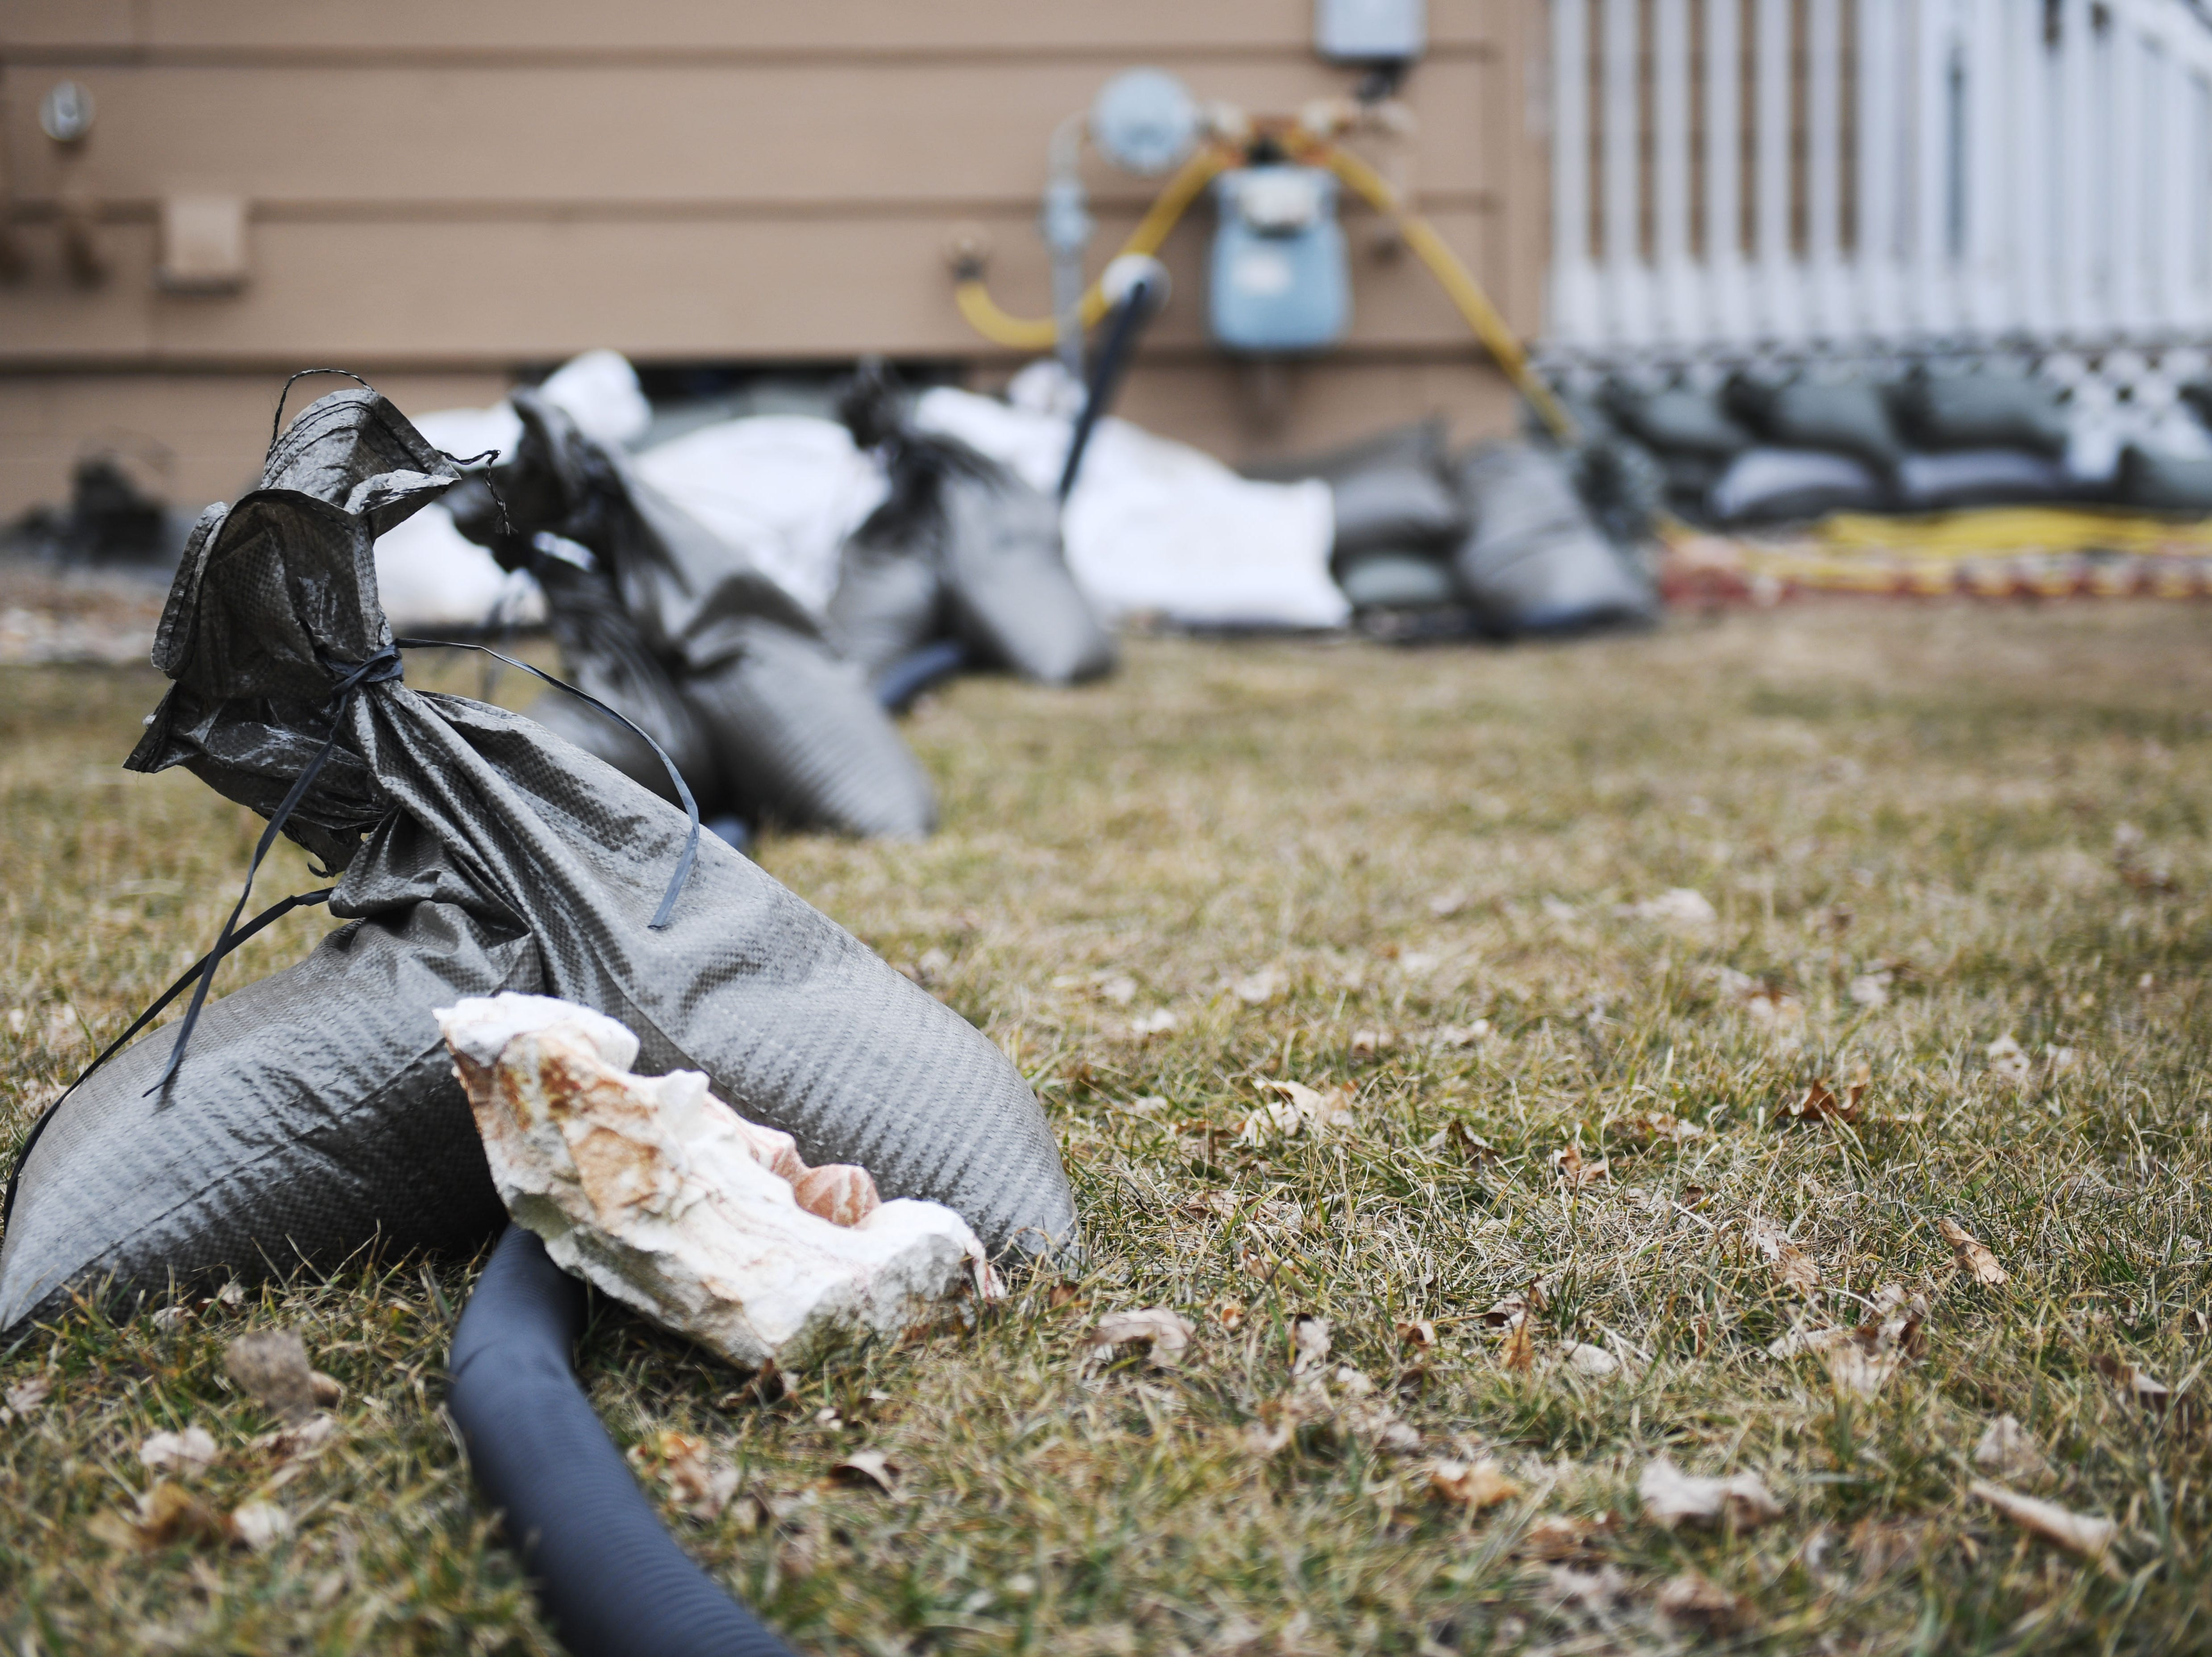 Homes on South Kiwanis Avenue are set up for flood prevention near Tomar Park Tuesday, March 26, in Sioux Falls.